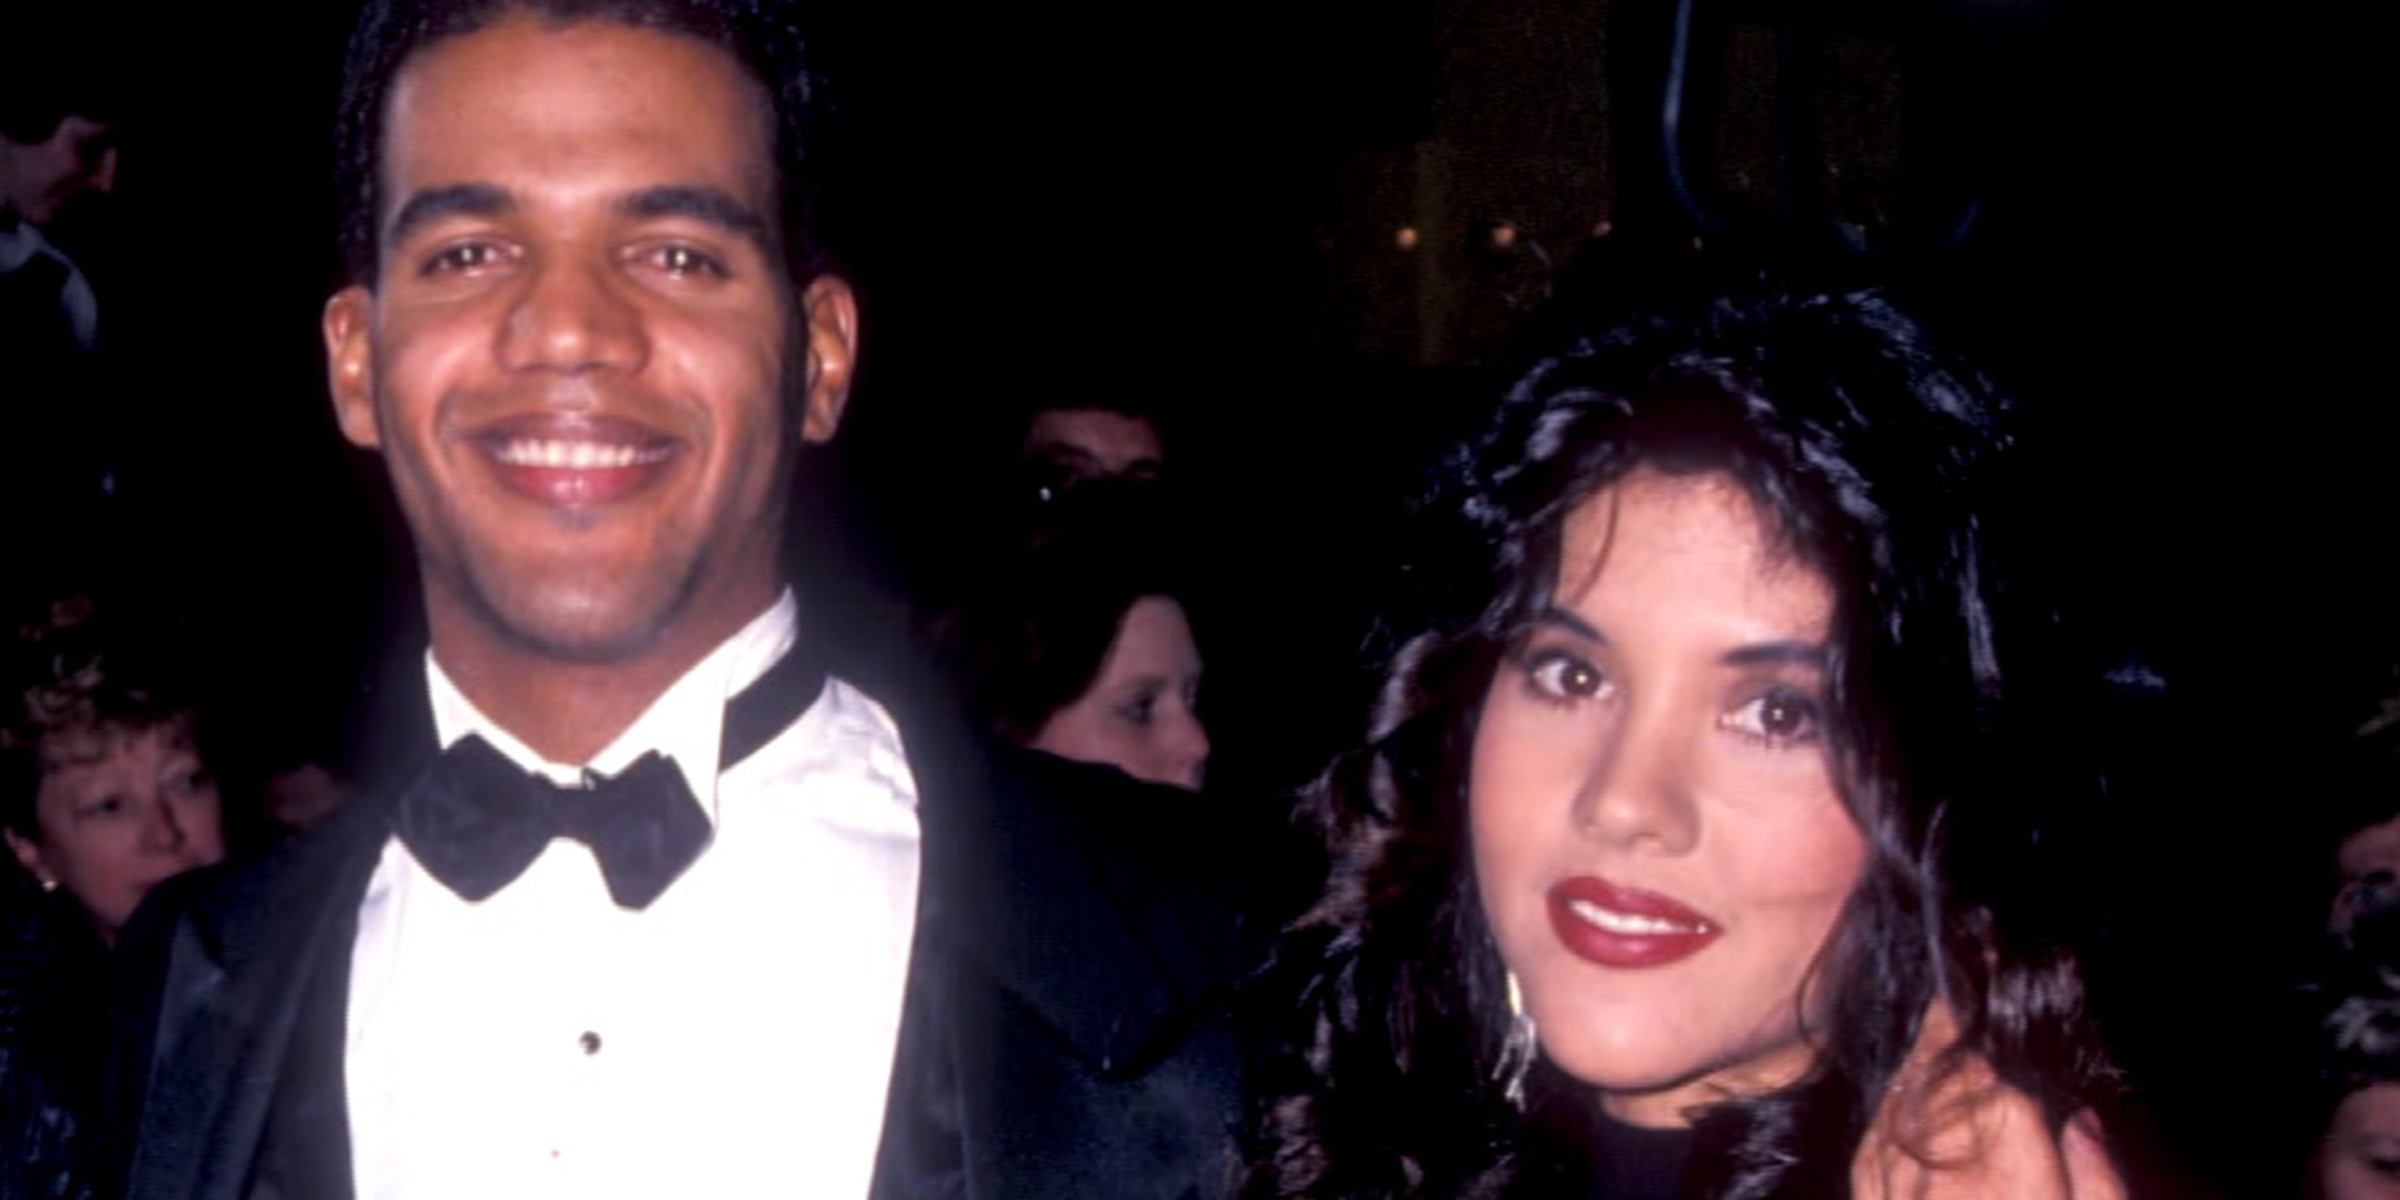 Kristoff St. John's ex-wife reveals late actor blamed himself for son's death